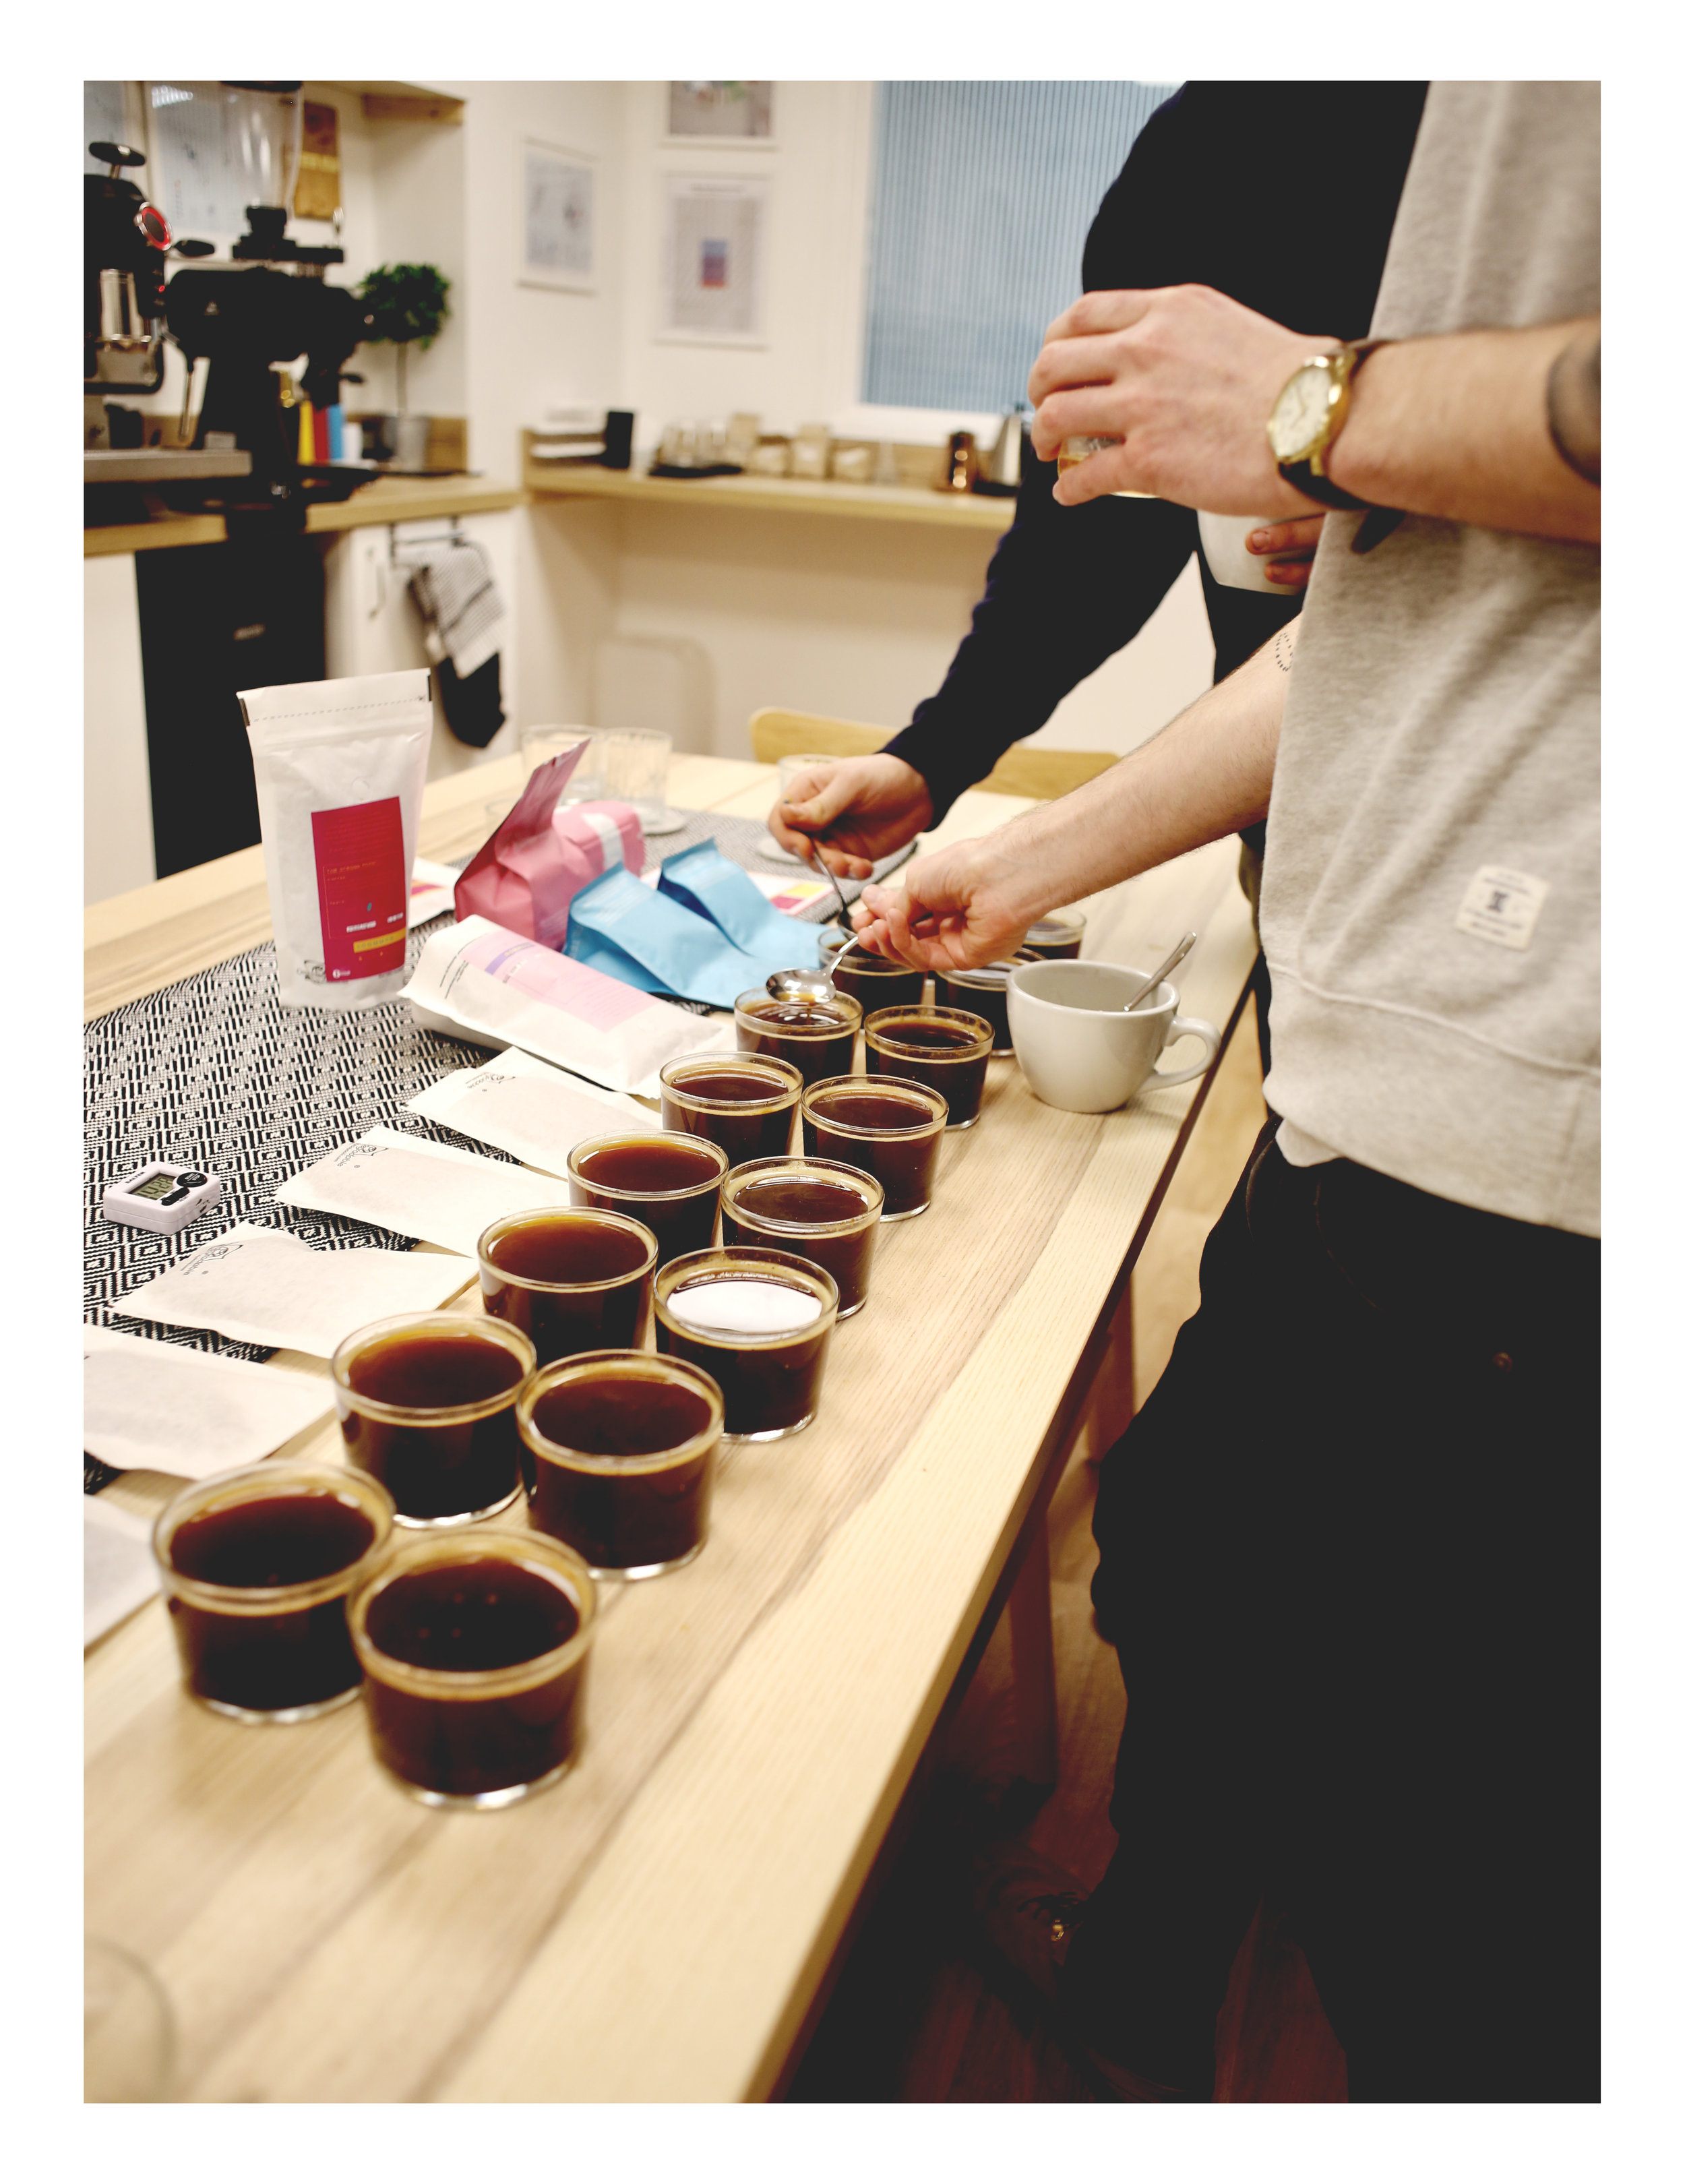 Cupping our first selection of coffee for our opening fortnight offering on   Espresso ,    Strong   from  iiCommon  from Edinburgh. Brazil & Guatemala Blend.  Tastes like chocolate cherry & roasted almonds.  Sourced from  Ally Coffee's  core coffee program.  It's a community of farmers from around the areas teaming up to produce these lots and still giving it traceability. Every bag of the Pau Brazil has a QR code which tells you exactly where the coffee came from, this is apart of the  coffee traceability certification programme . It's very rare to be able to get traceability on volumes lots like this one.   Origin:    Brazil & Guatemala     Farm:   Pau Brazil (Brazil)  Ceiba (Guatemala)    Process:   Natural (Brazil)  Washed (Guatemala)    Varietals :  Catuai (Brazil)  Caturra, Bourbon, Typica, Catuai, Catimor, Sarchimor, Pache, Pacamara (Guatemala)    Altitudes :  1100 masl (Brazil)  1500 masl (Guatemala)     Filter ,   Round Hill Roastery  from Bristol with their Colombia Tarqui Cup Series.  Coffee 1.   Rolando Cordoba Ramos    Origin:  Colombia   Farm:  Mirolindo   Producer:  Rolando Cordoba Ramos   Varietal: Colombia   Process:  Tula Fermented & Washed   Altitude:  2000   Tastes Like:  a dream (Come see us to find out.)    Coffee 2.   Sinforoso Ramos Valensula    Origin : Colombia   Farm:  El Paradiso   Producer:  Sinforoso Ramos Valensula   Varietal:  Caturra & Colombia   Process:  Tula Fermented & Washed   Altitude:  1900   Tastes Like:  bliss. (Come pay us a visit!)